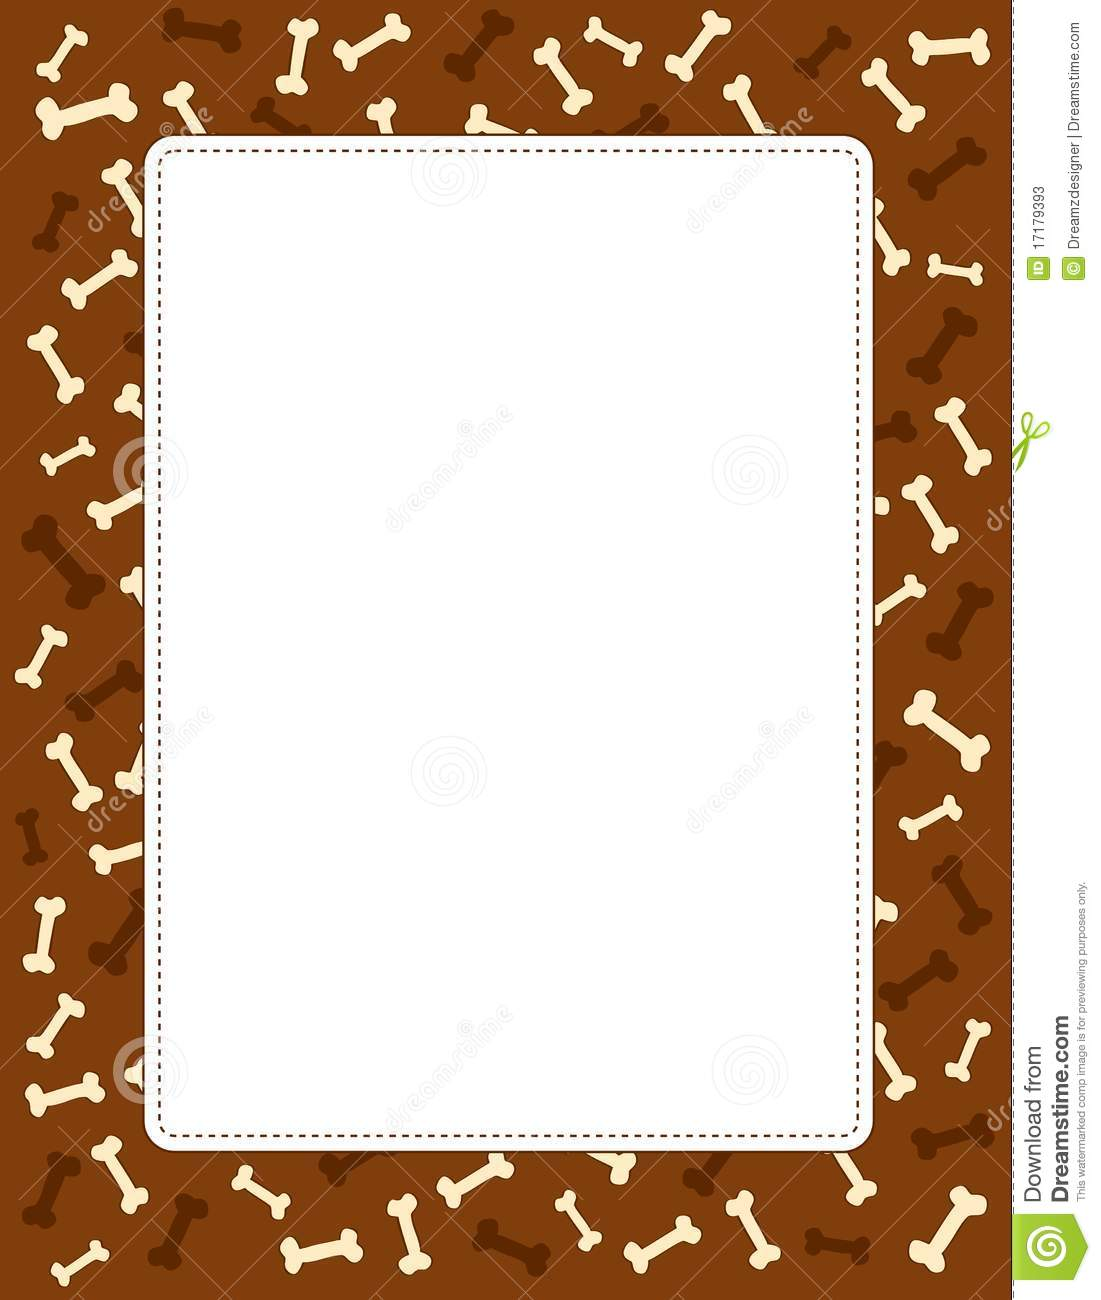 Animal / dog bones seamless background / border / frame.